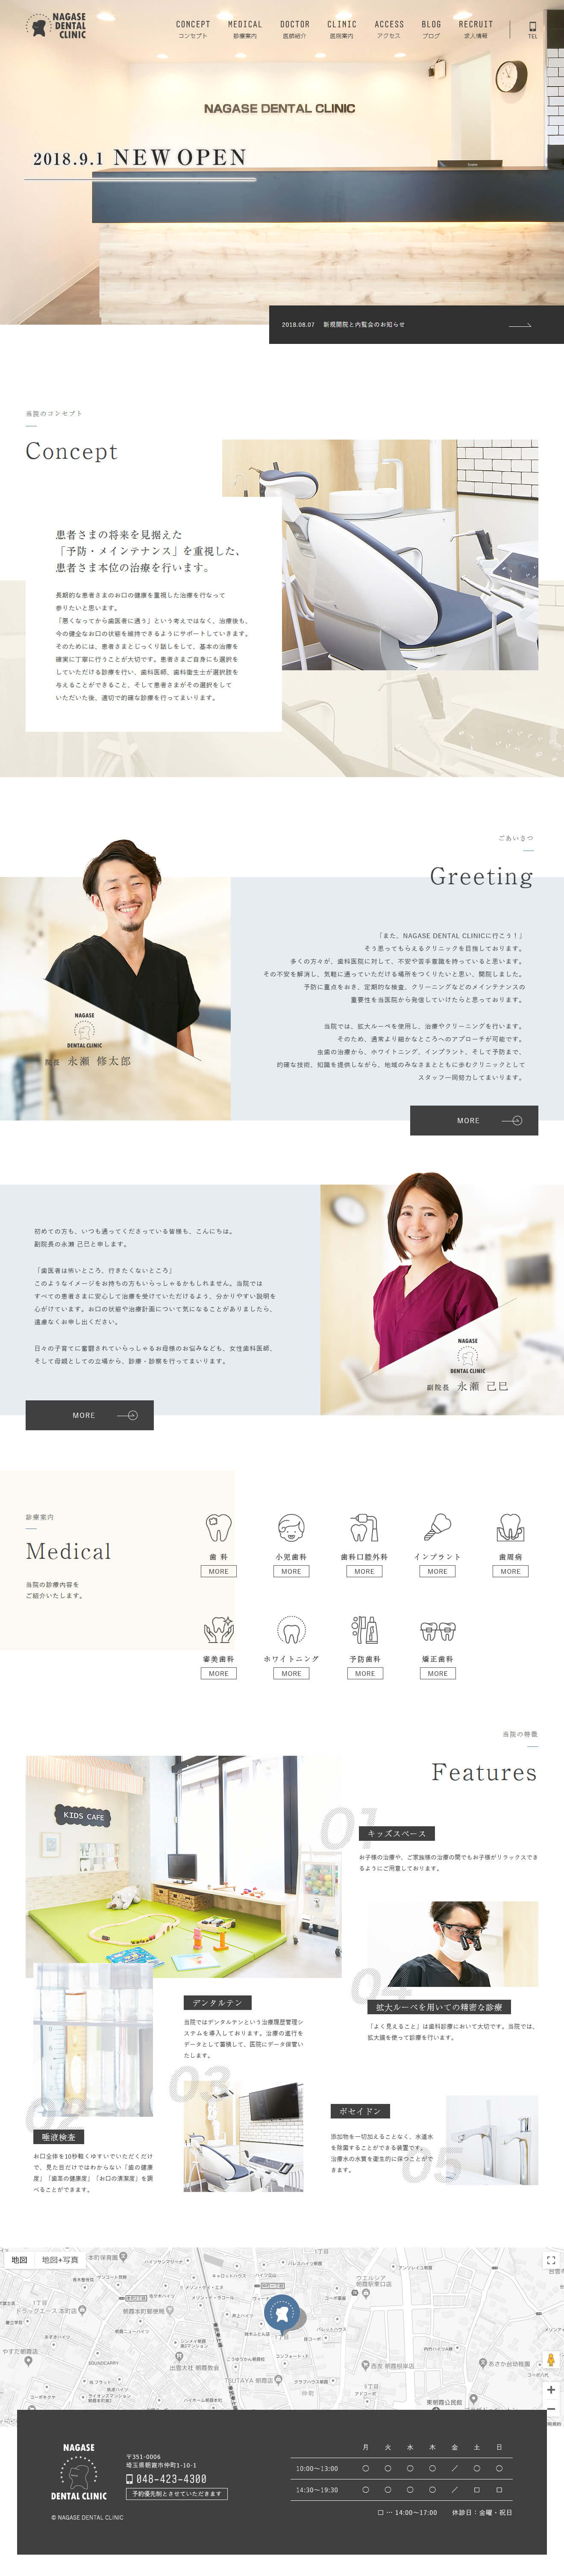 NAGASE DENTAL CLINIC